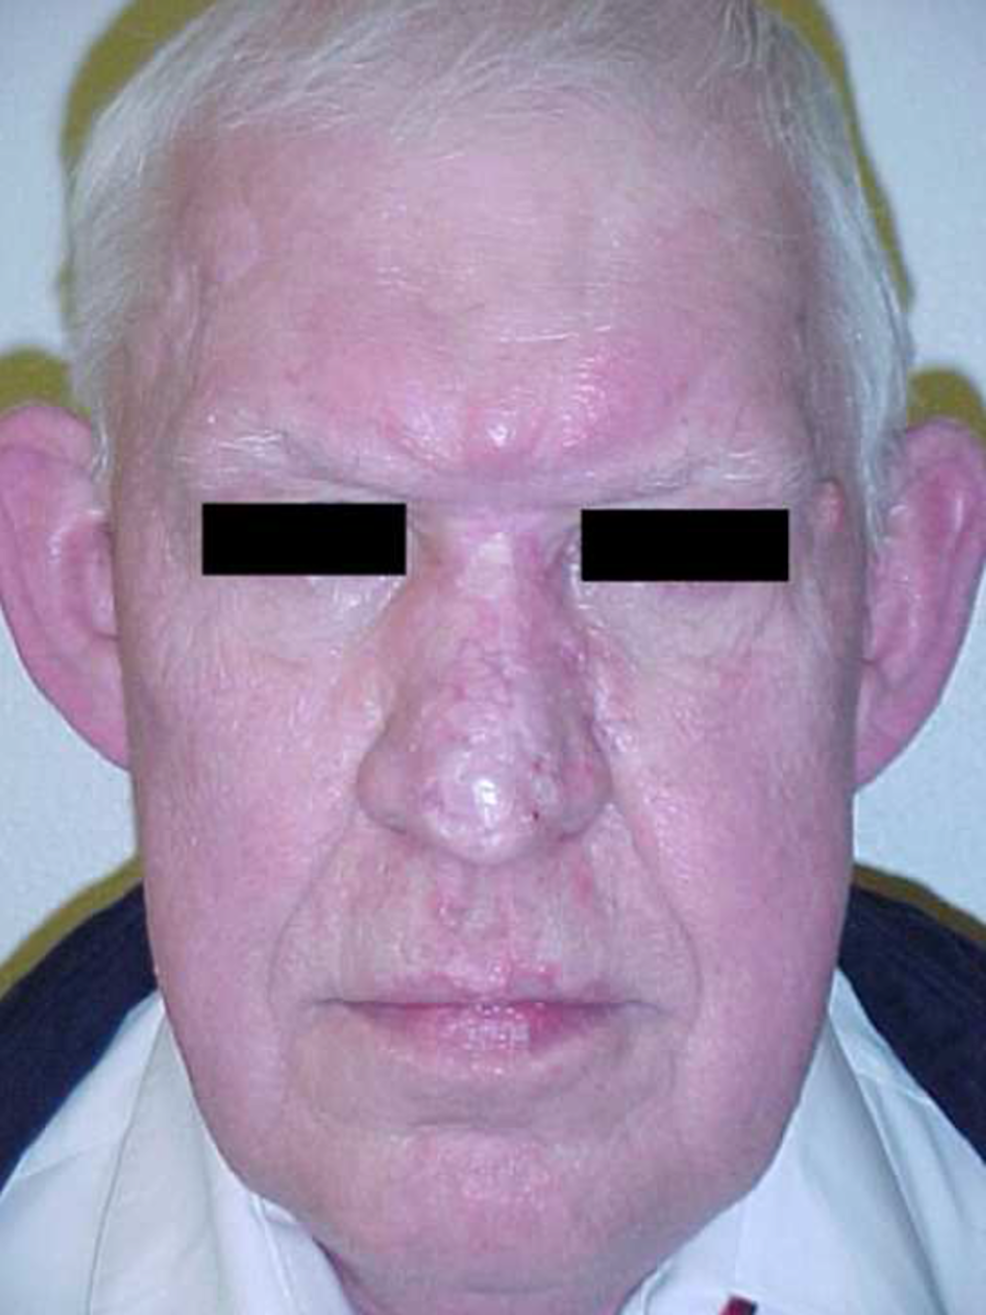 Frontal-postoperative-appearance